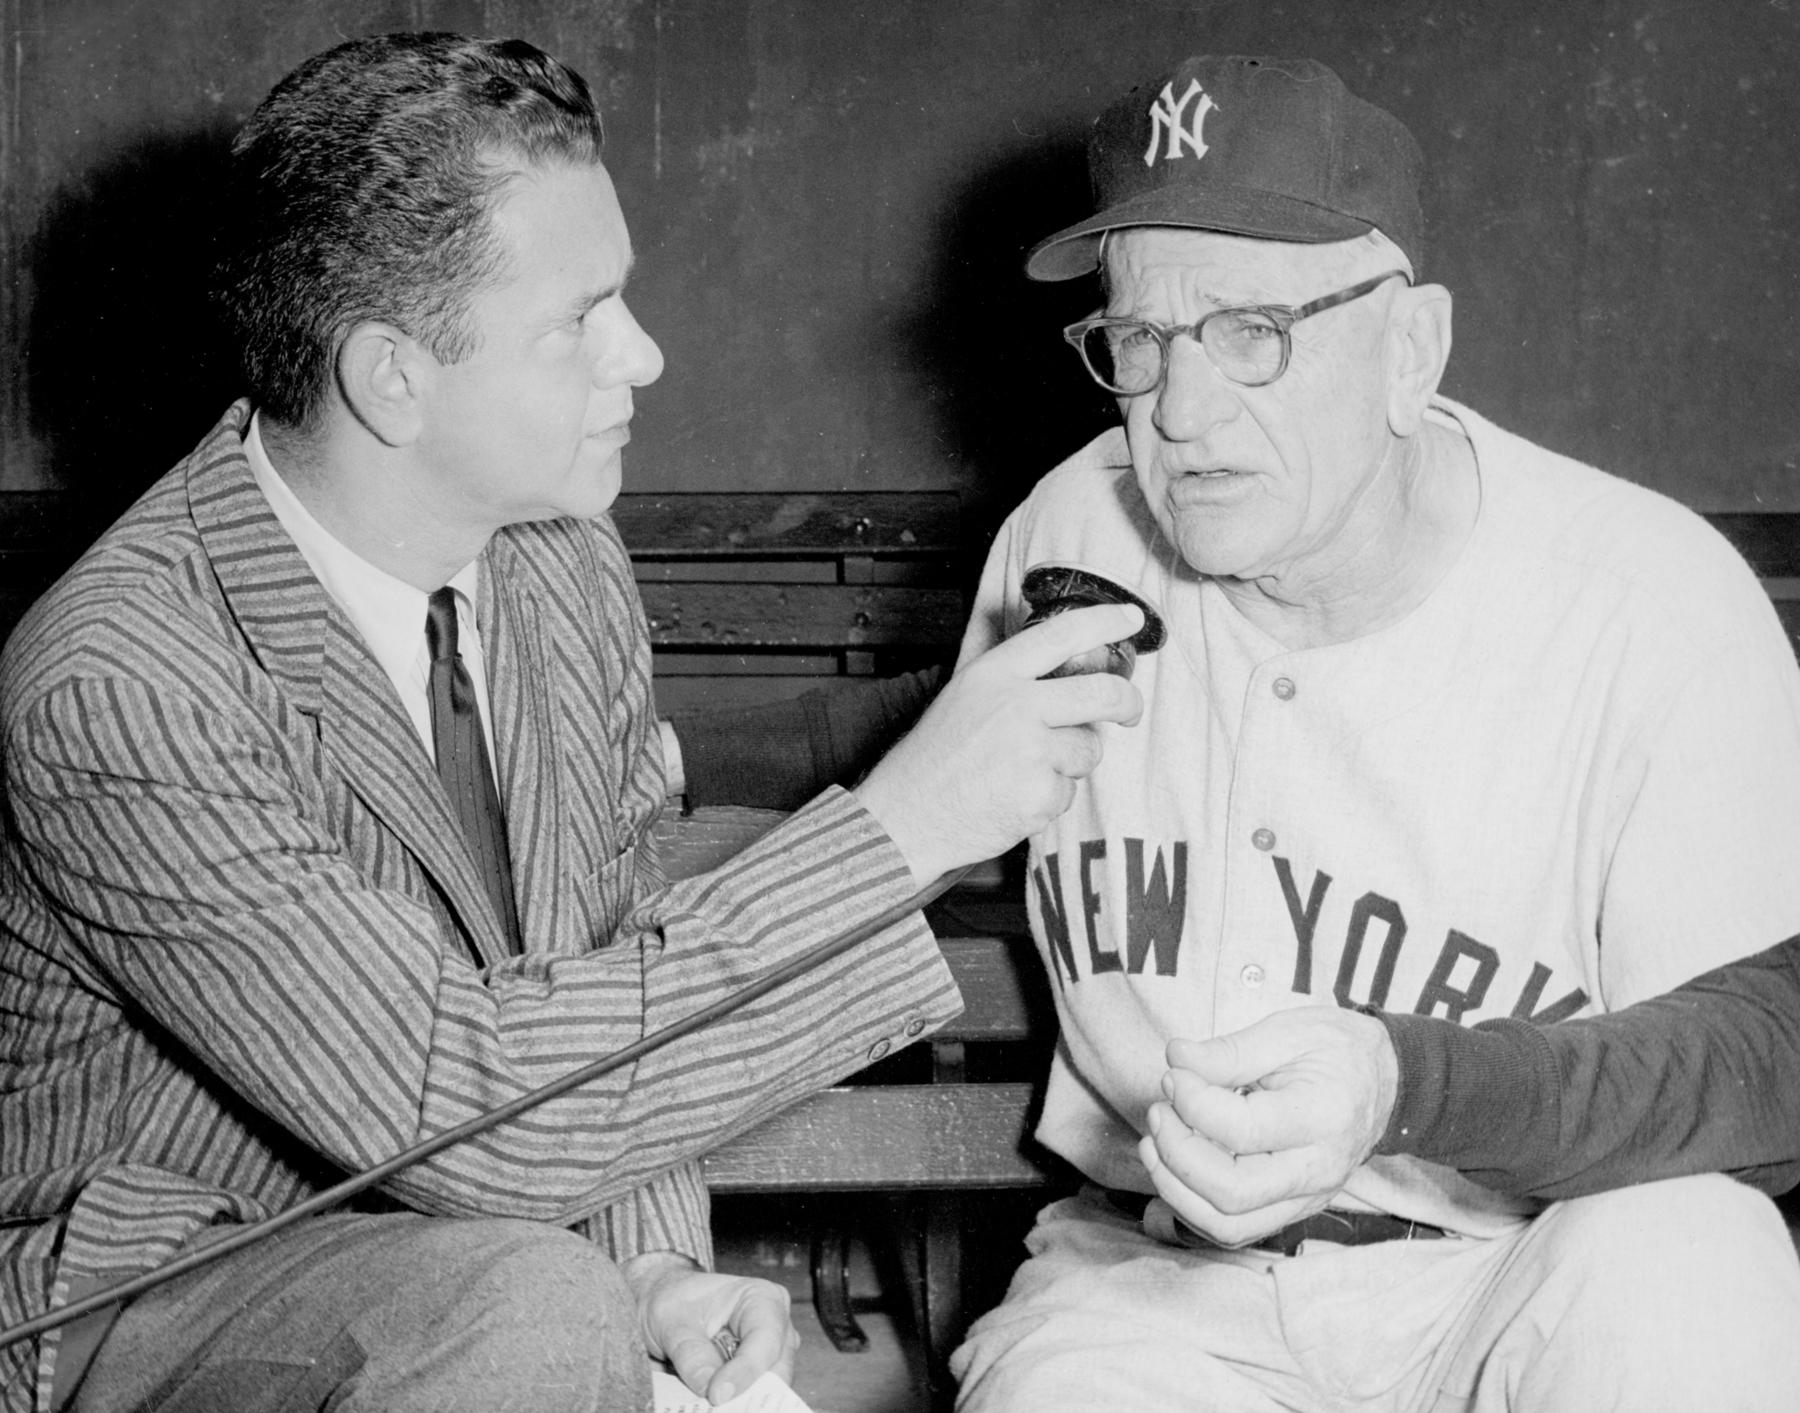 1995 Ford C. Frick Award Winner Bob Wolff interviews Hall of Famer Casey Stengel in the dugout. (National Baseball Hall of Fame and Museum)